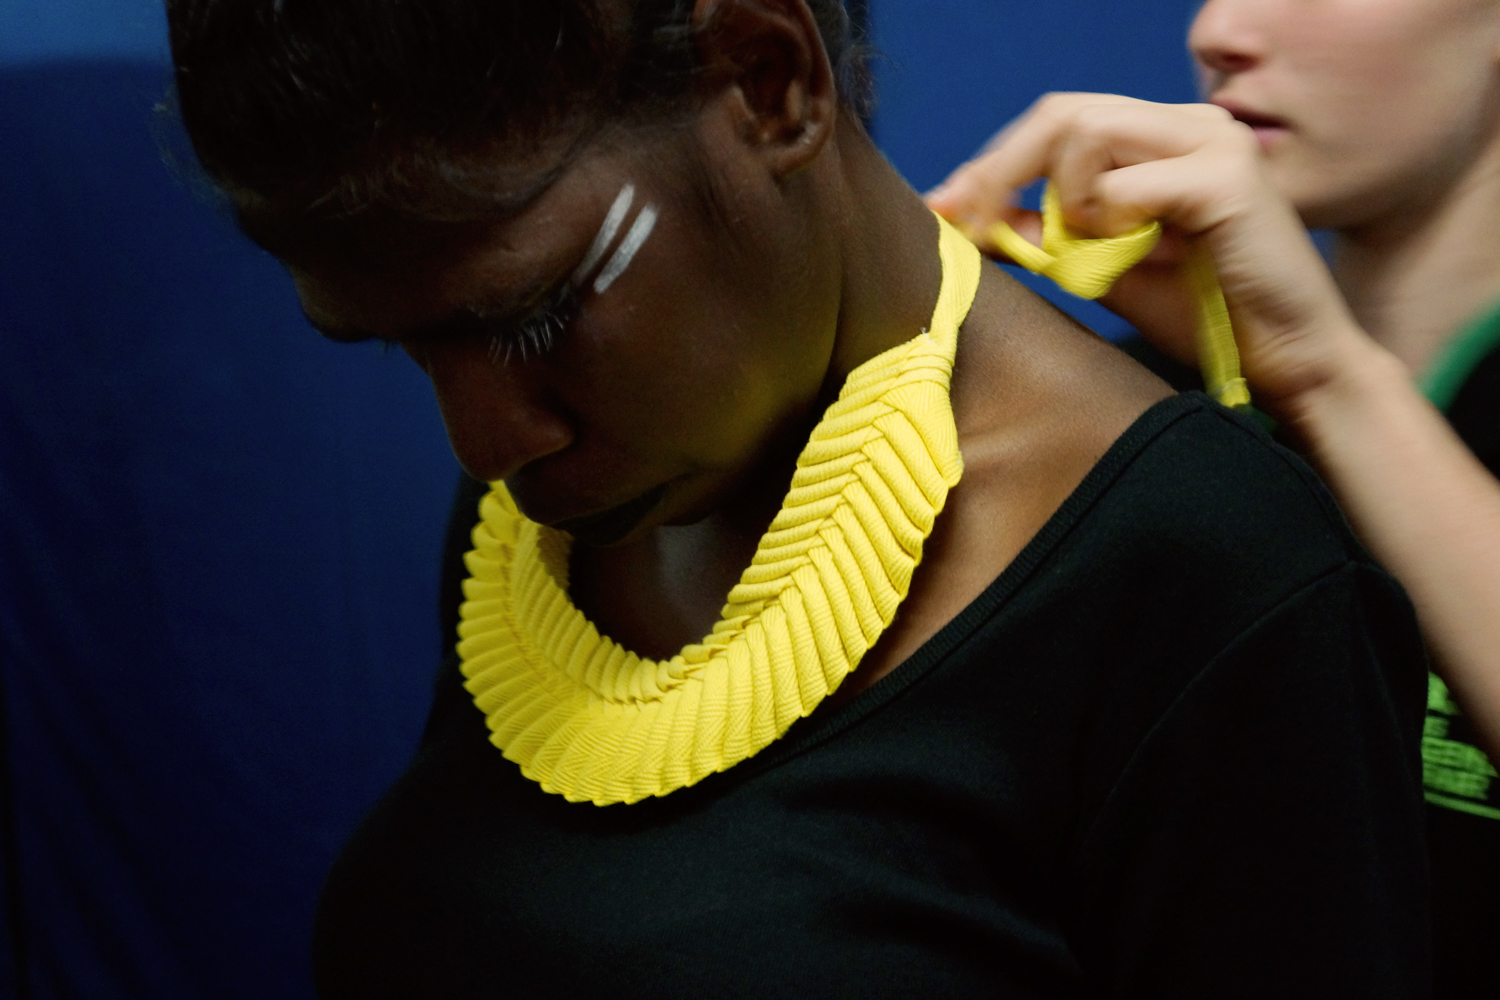 Jana Jaral - model being dressed in Grace Lillian Lee neckpiece